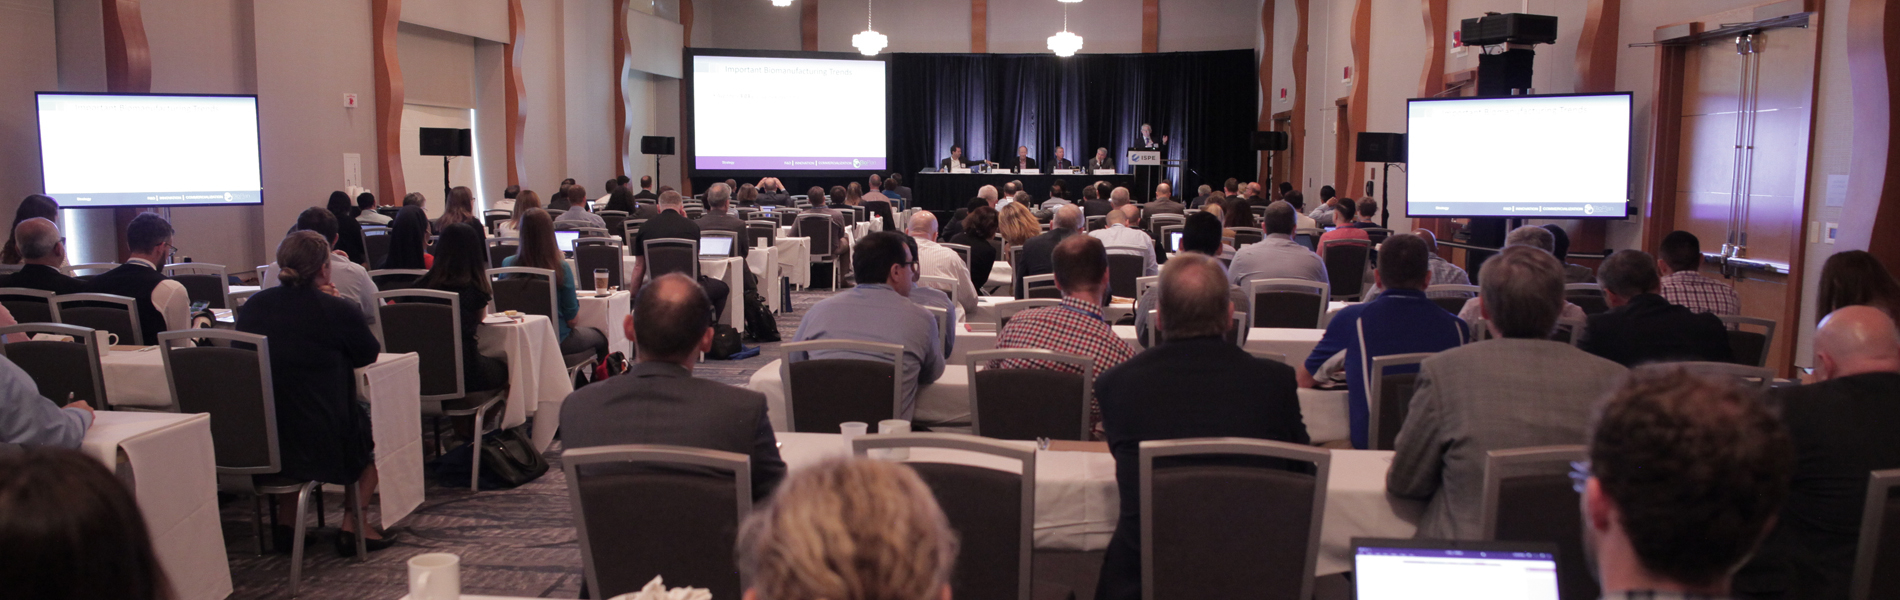 2019 ISPE Biopharmaceutical Manufacturing Conference Plenary Session - ISPE Pharmaceutical Engineering